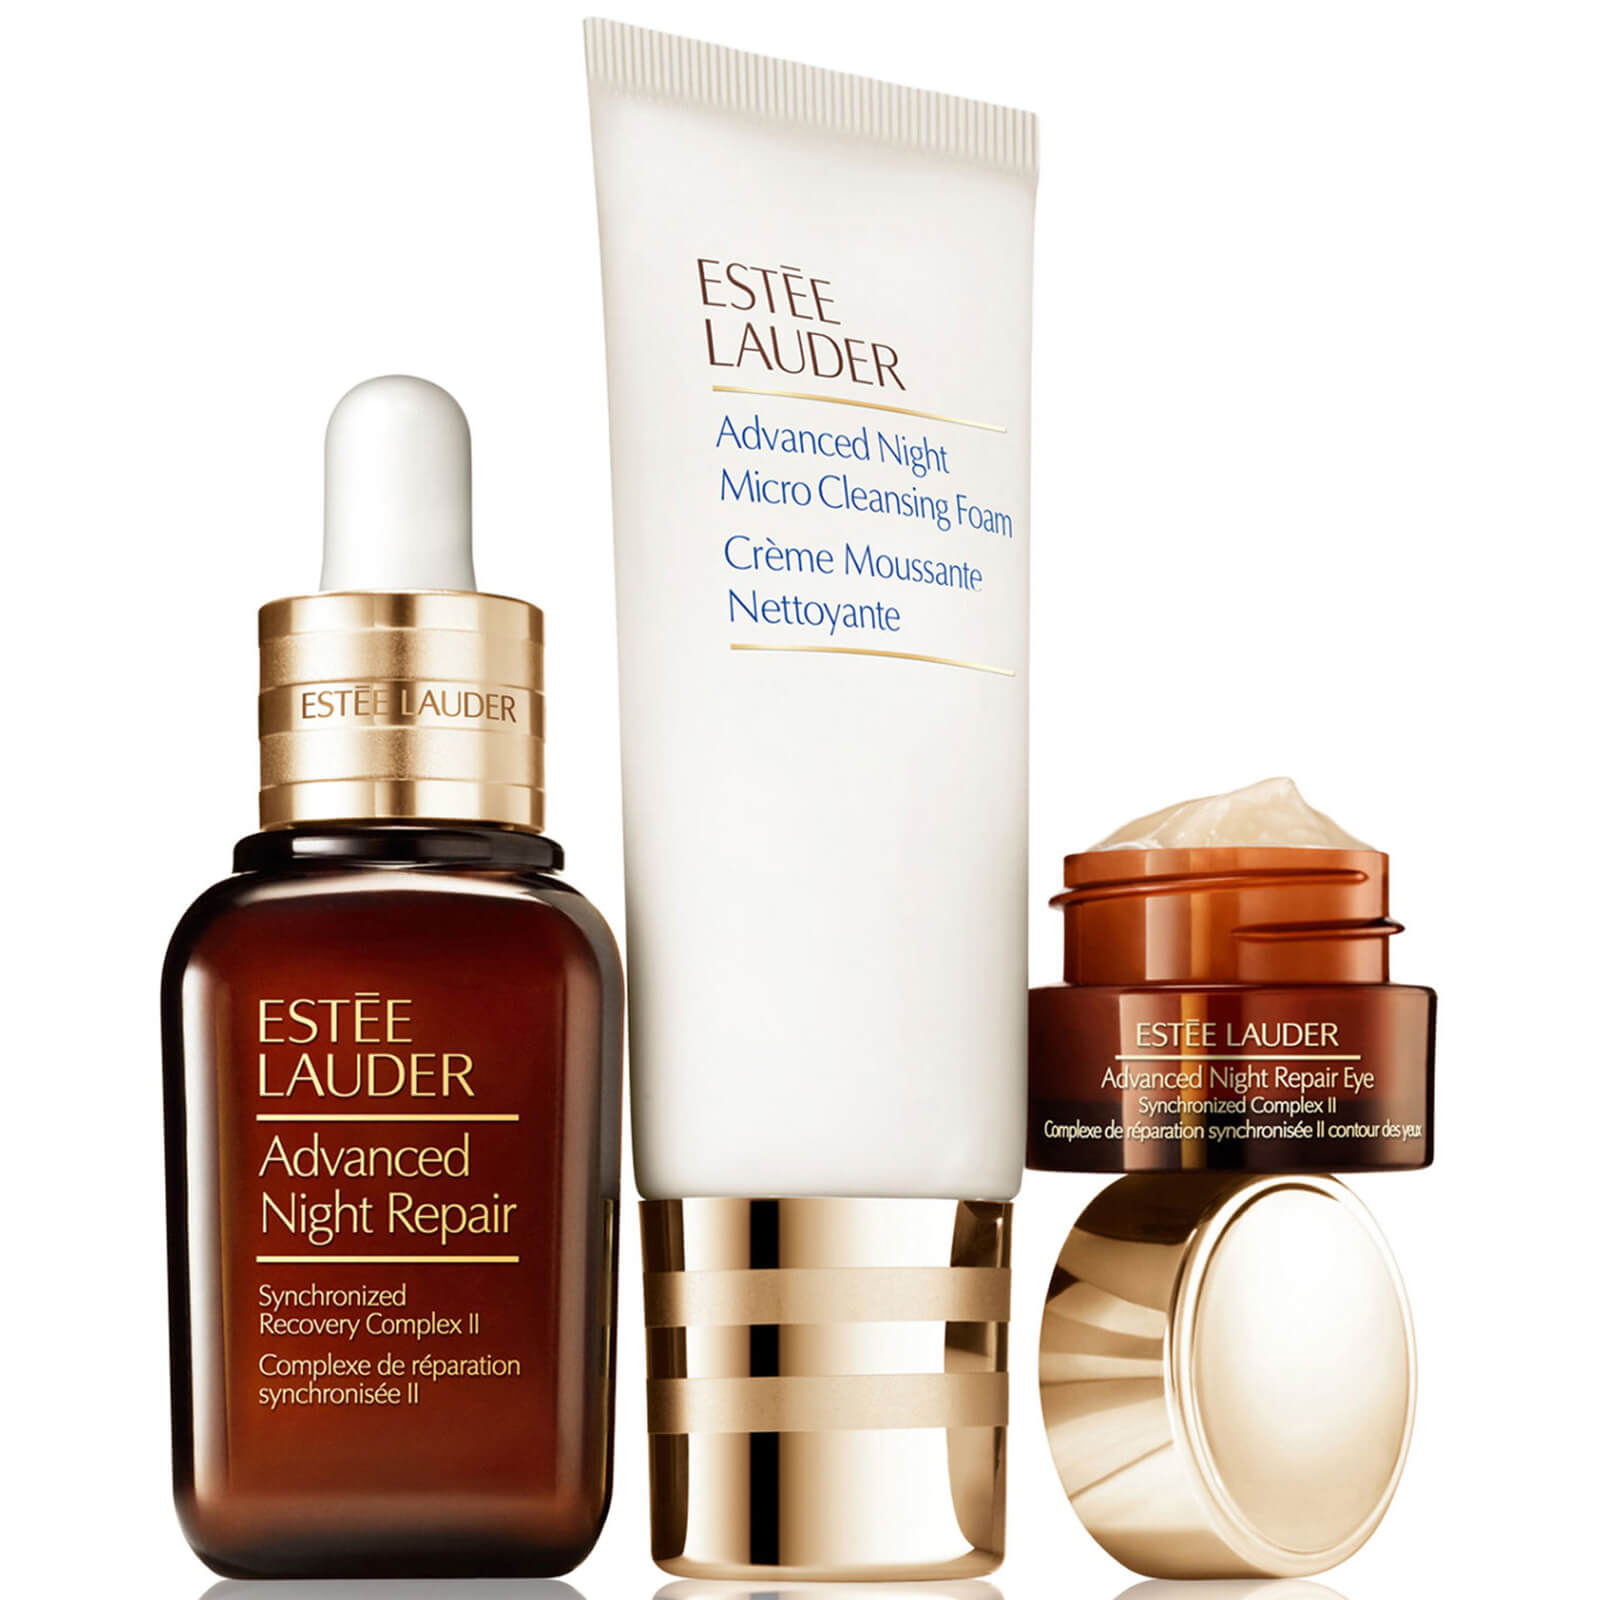 1483a36efe0b Estée Lauder The Night Time Experts Limited Edition Skin Care Set ...